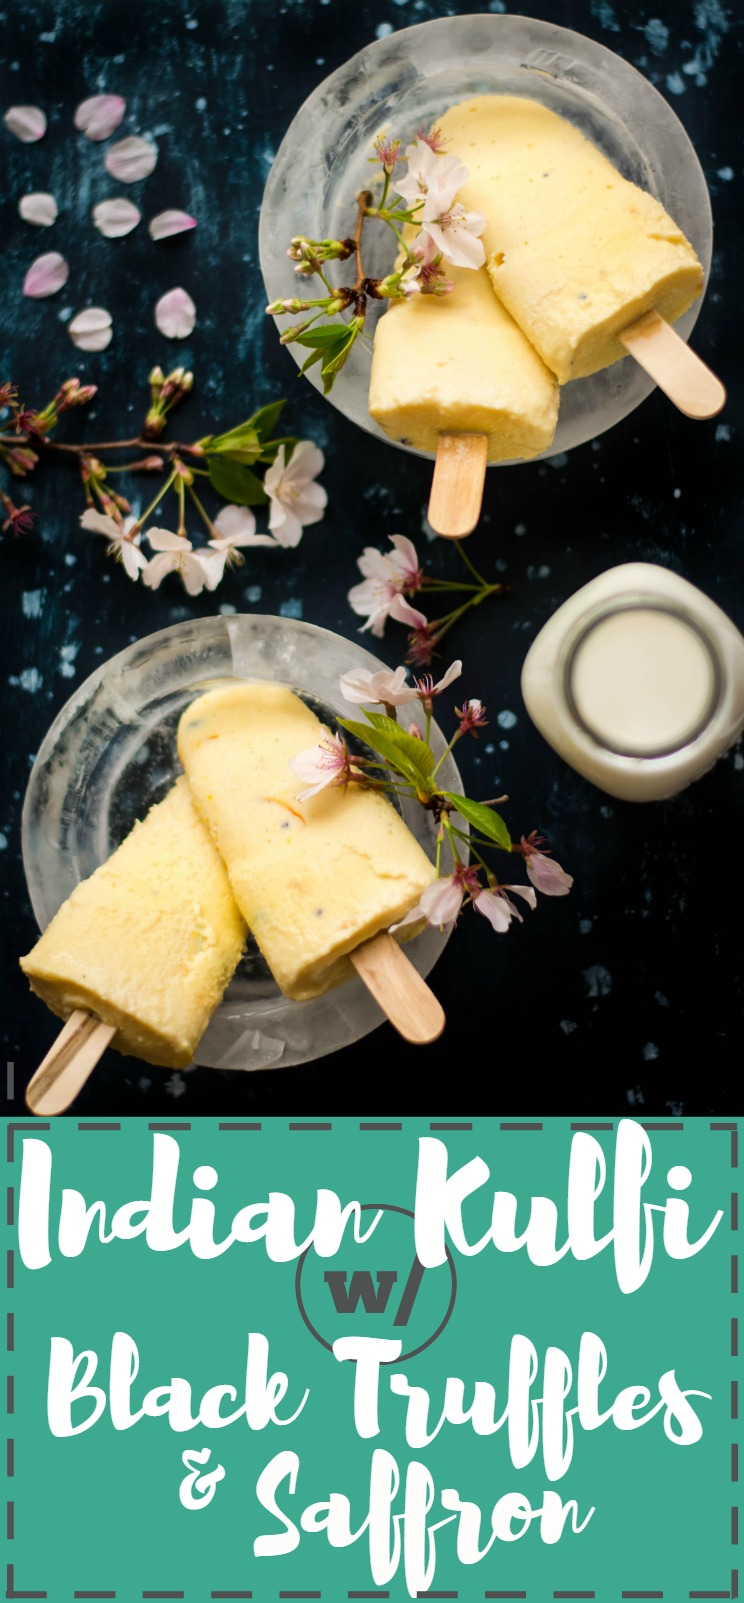 Reduced Milk, sweetened & infused with Black Truffle slices and Saffron - this Black Truffle and Saffron Kulfi is a dessert unlike any other! #vegetarian #glutenfree #dessert #indian #fusionfood #milk